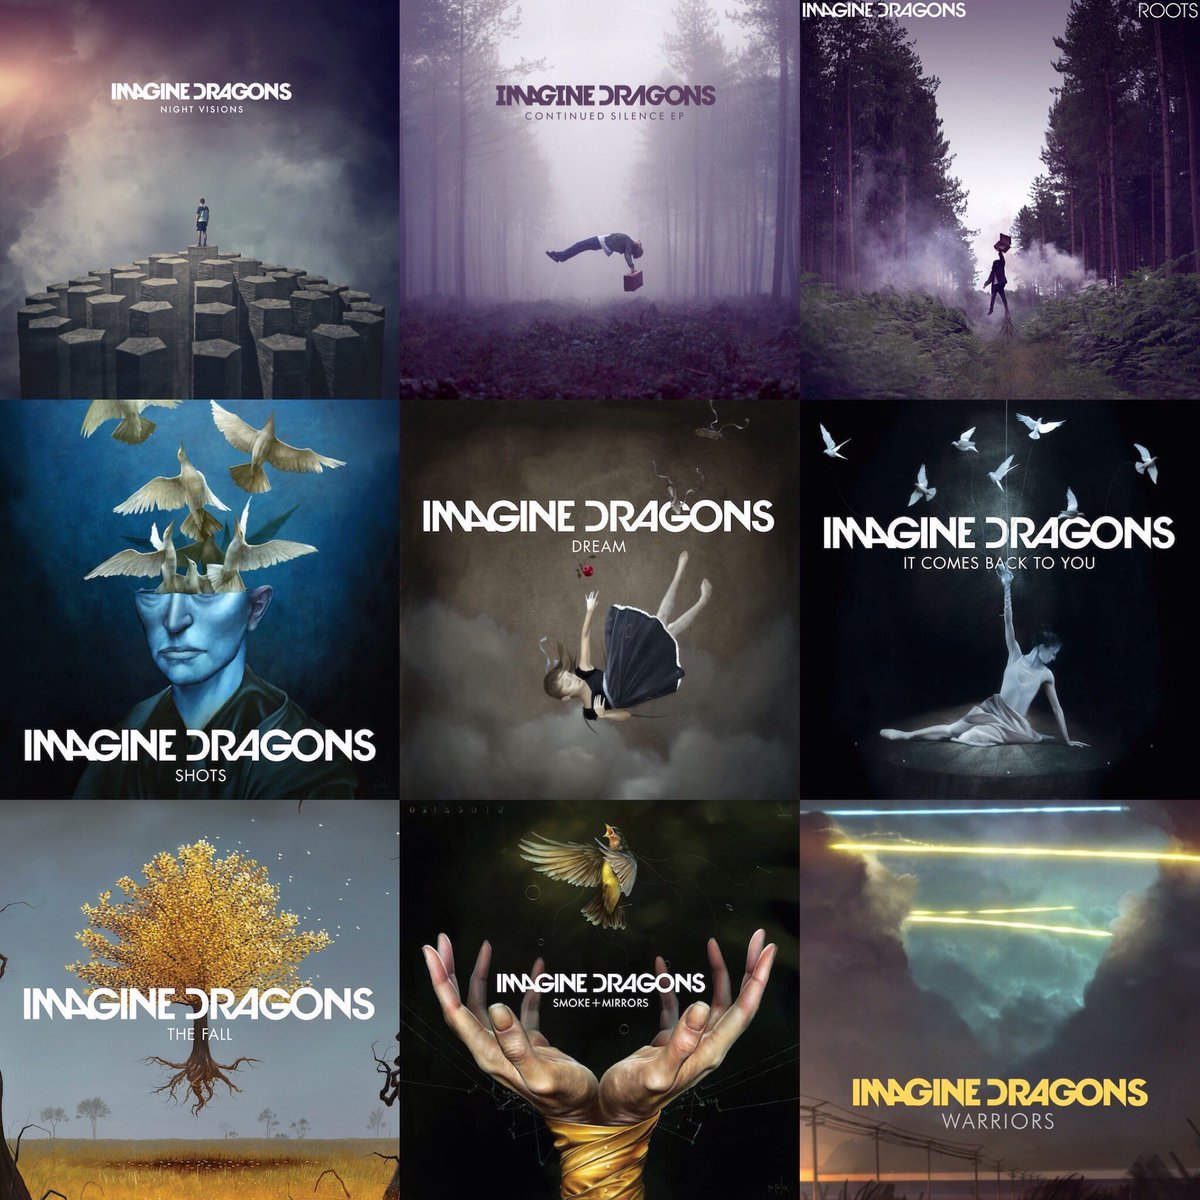 I say masterpiece then you say imagine dragons's music's covers #Imagi...